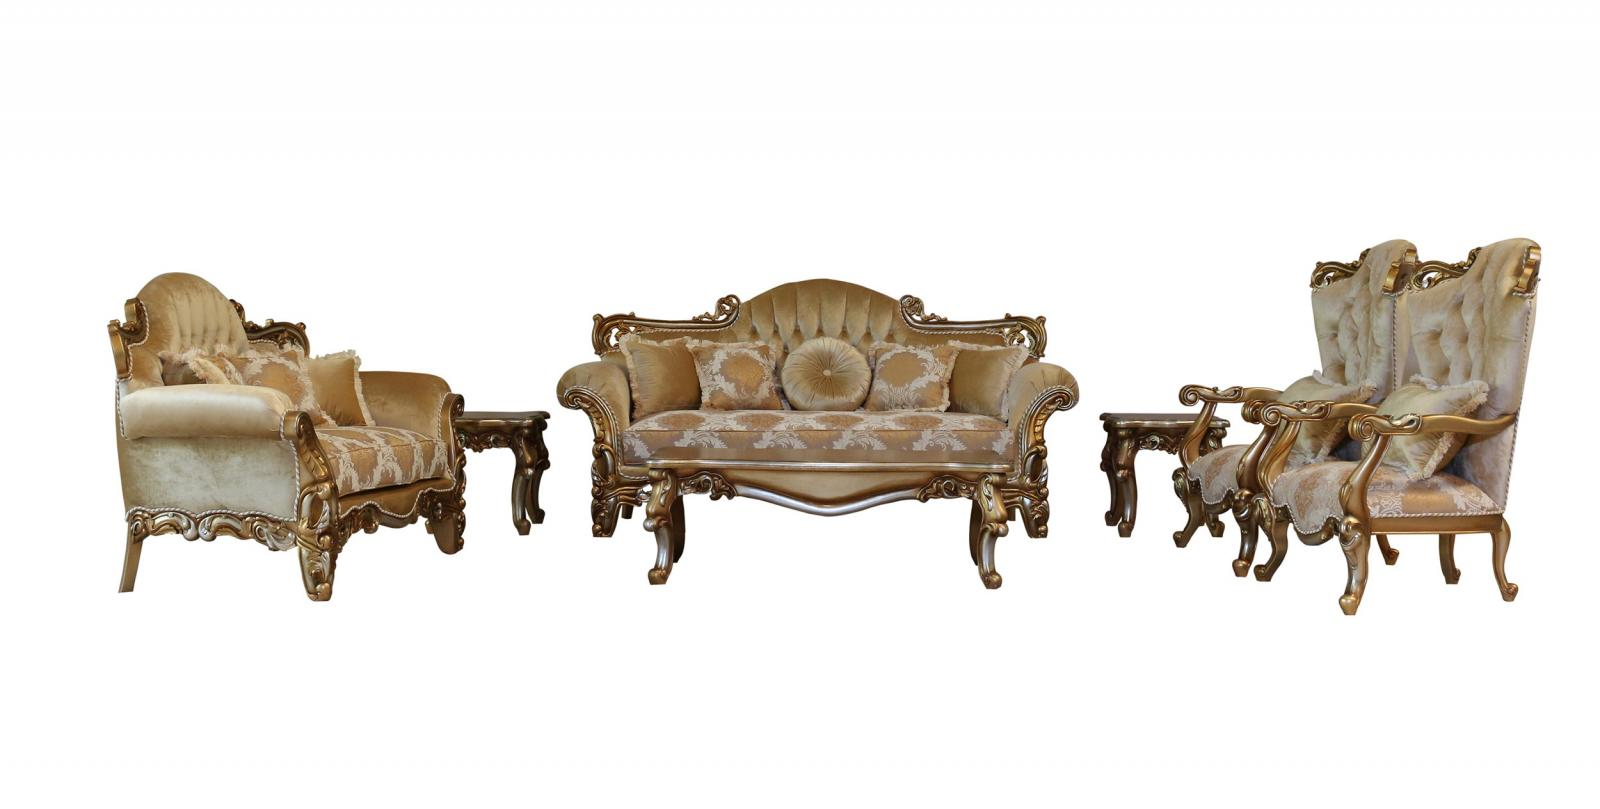 Classic  Traditional Brown  Gold  Silver Wood  Solid Hardwood and Fabric Sofa Set EUROPEAN FURNITURE 43553-S-Set-4